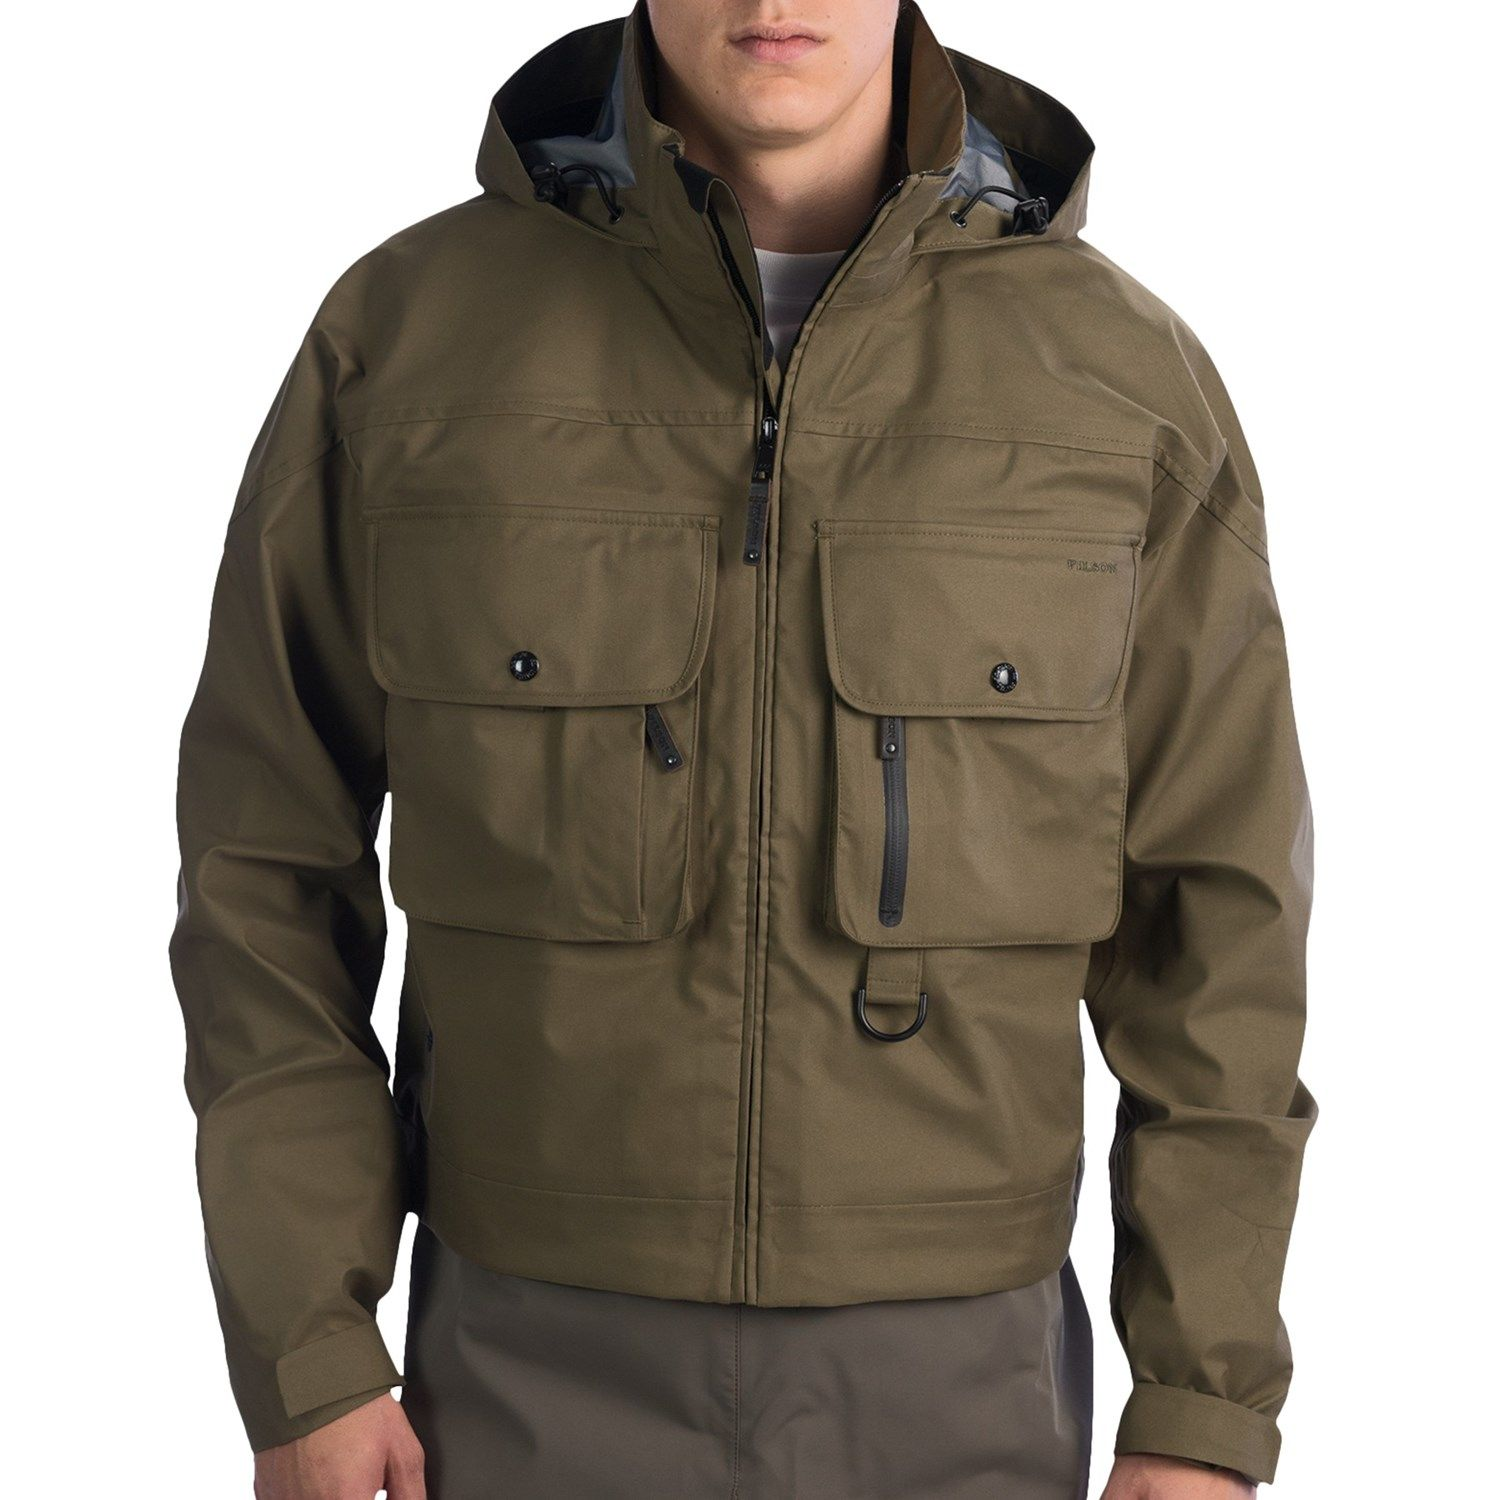 Filson Pro Guide Wading Jacket Waterproof For Men Survival Gear Clothing Outdoor Outfit Jackets